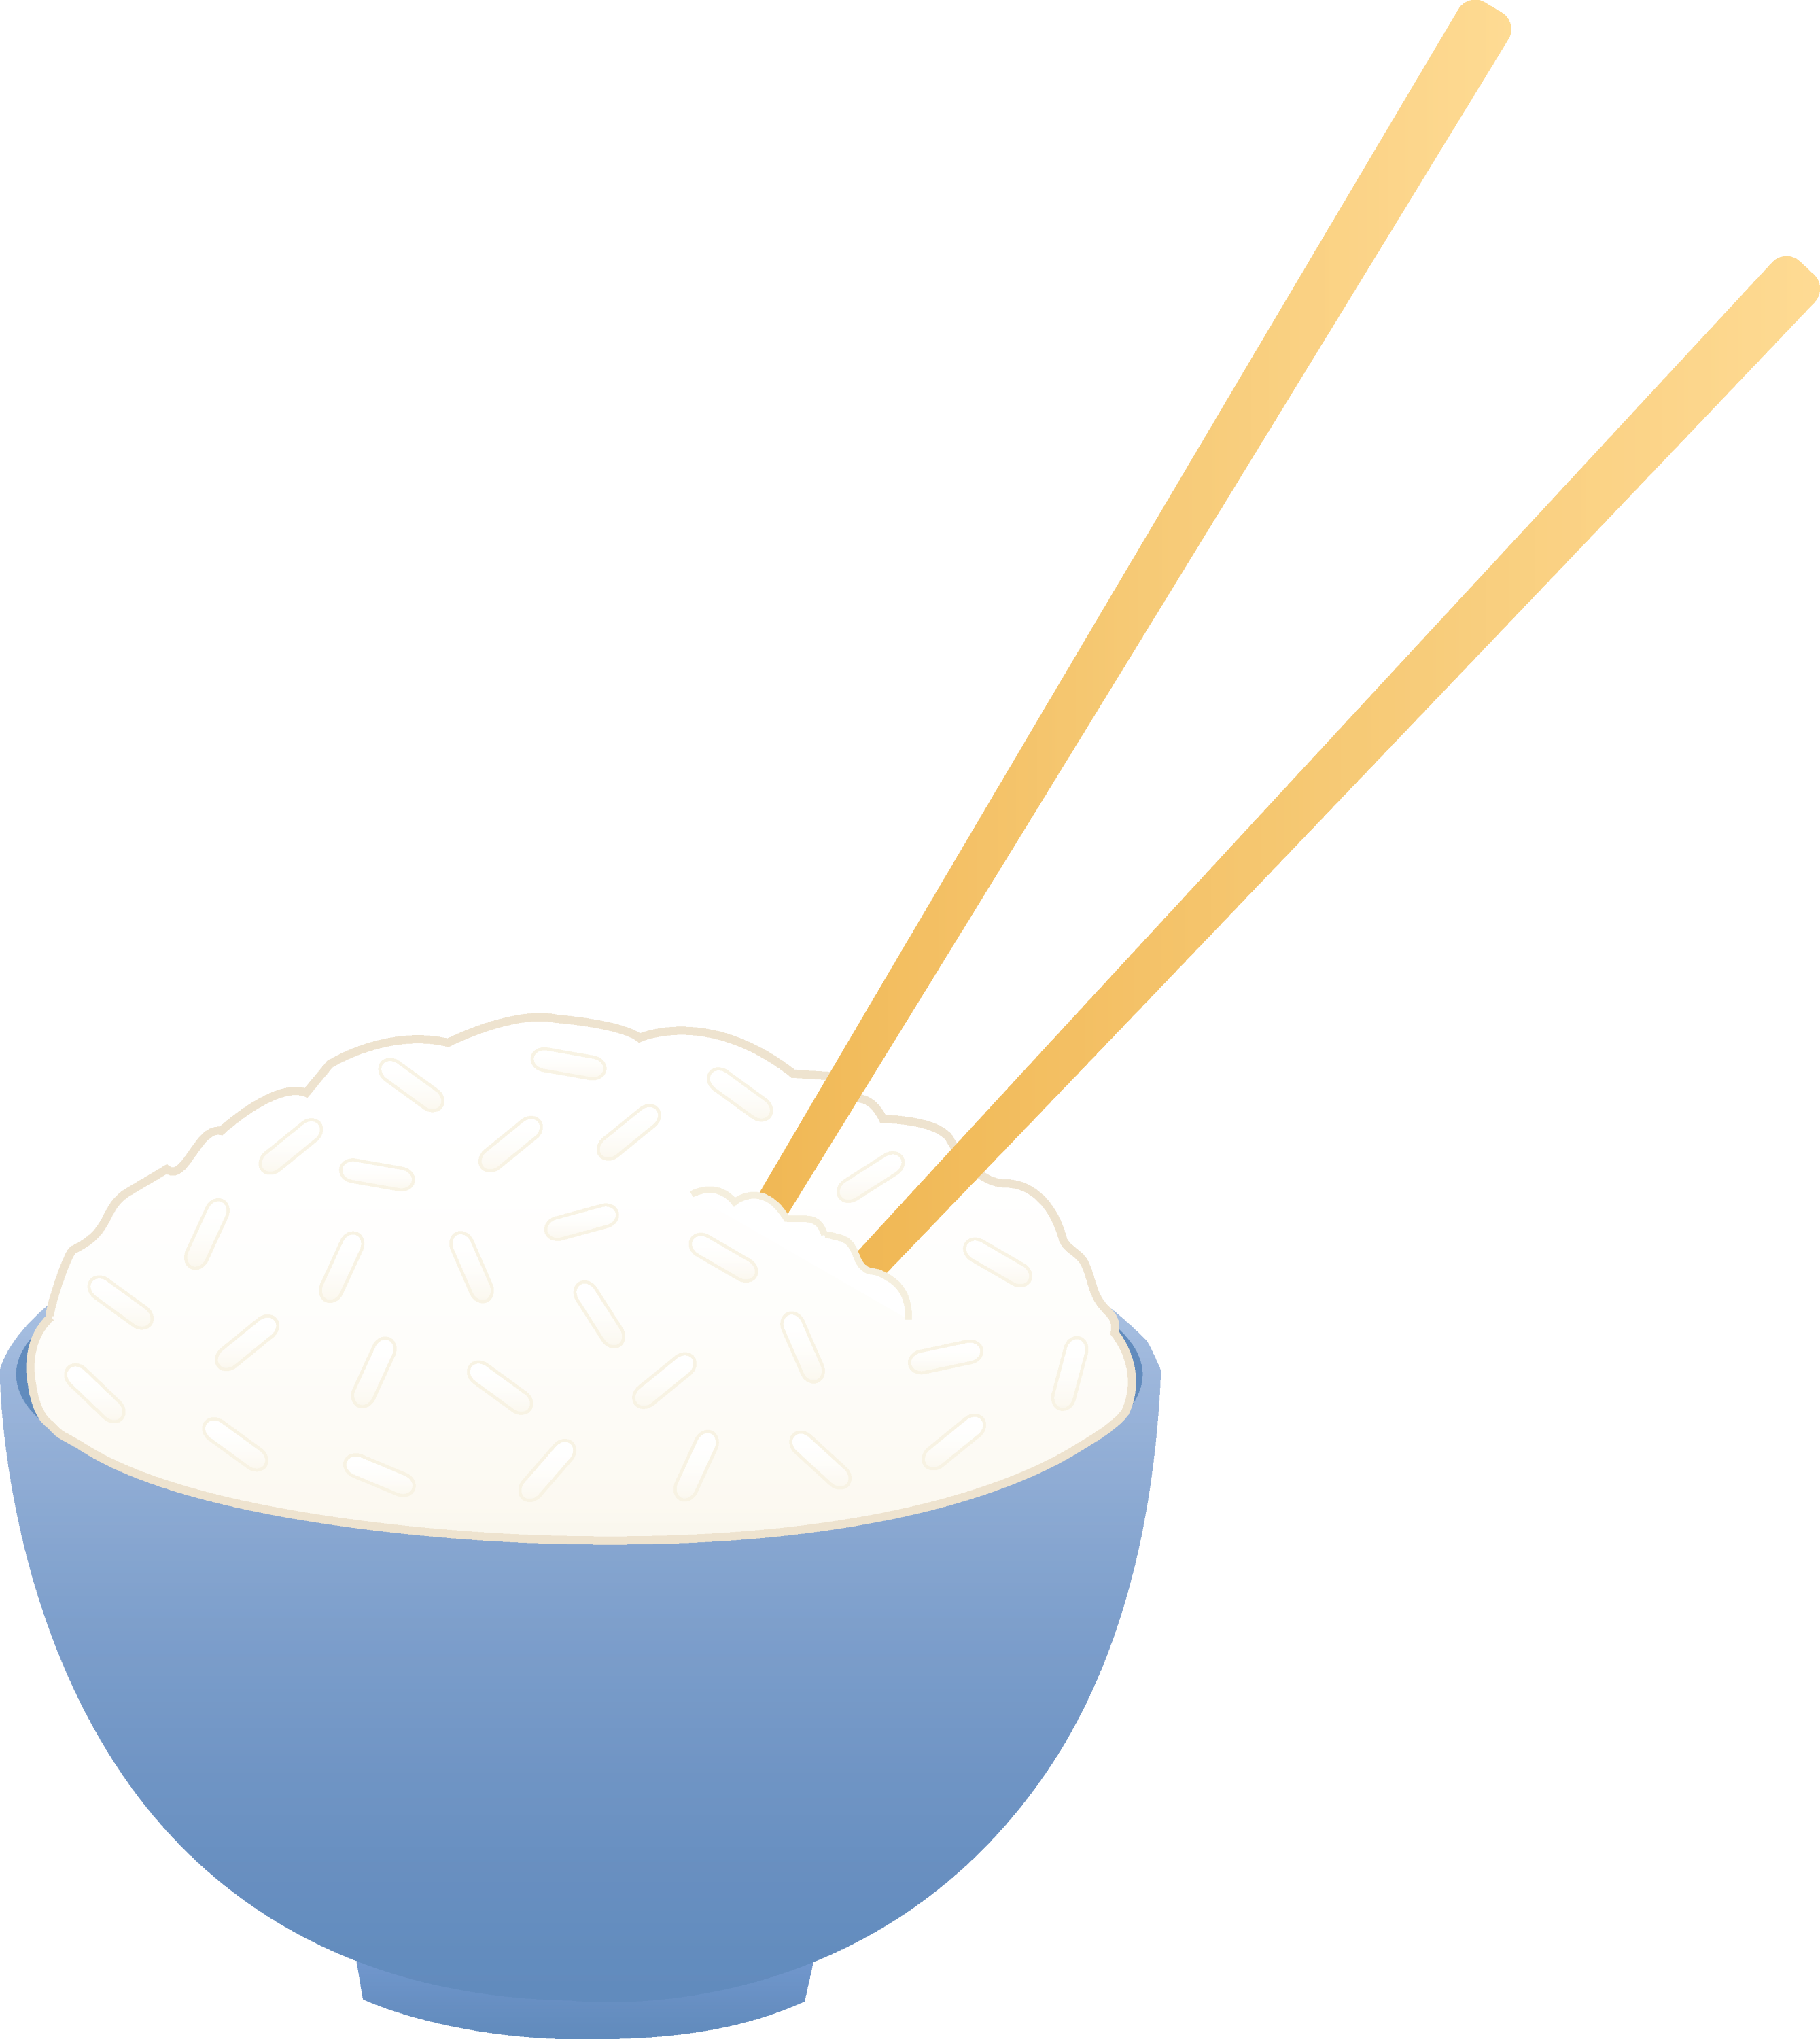 Bowl of White Rice With Chopsticks - Free Clip Art